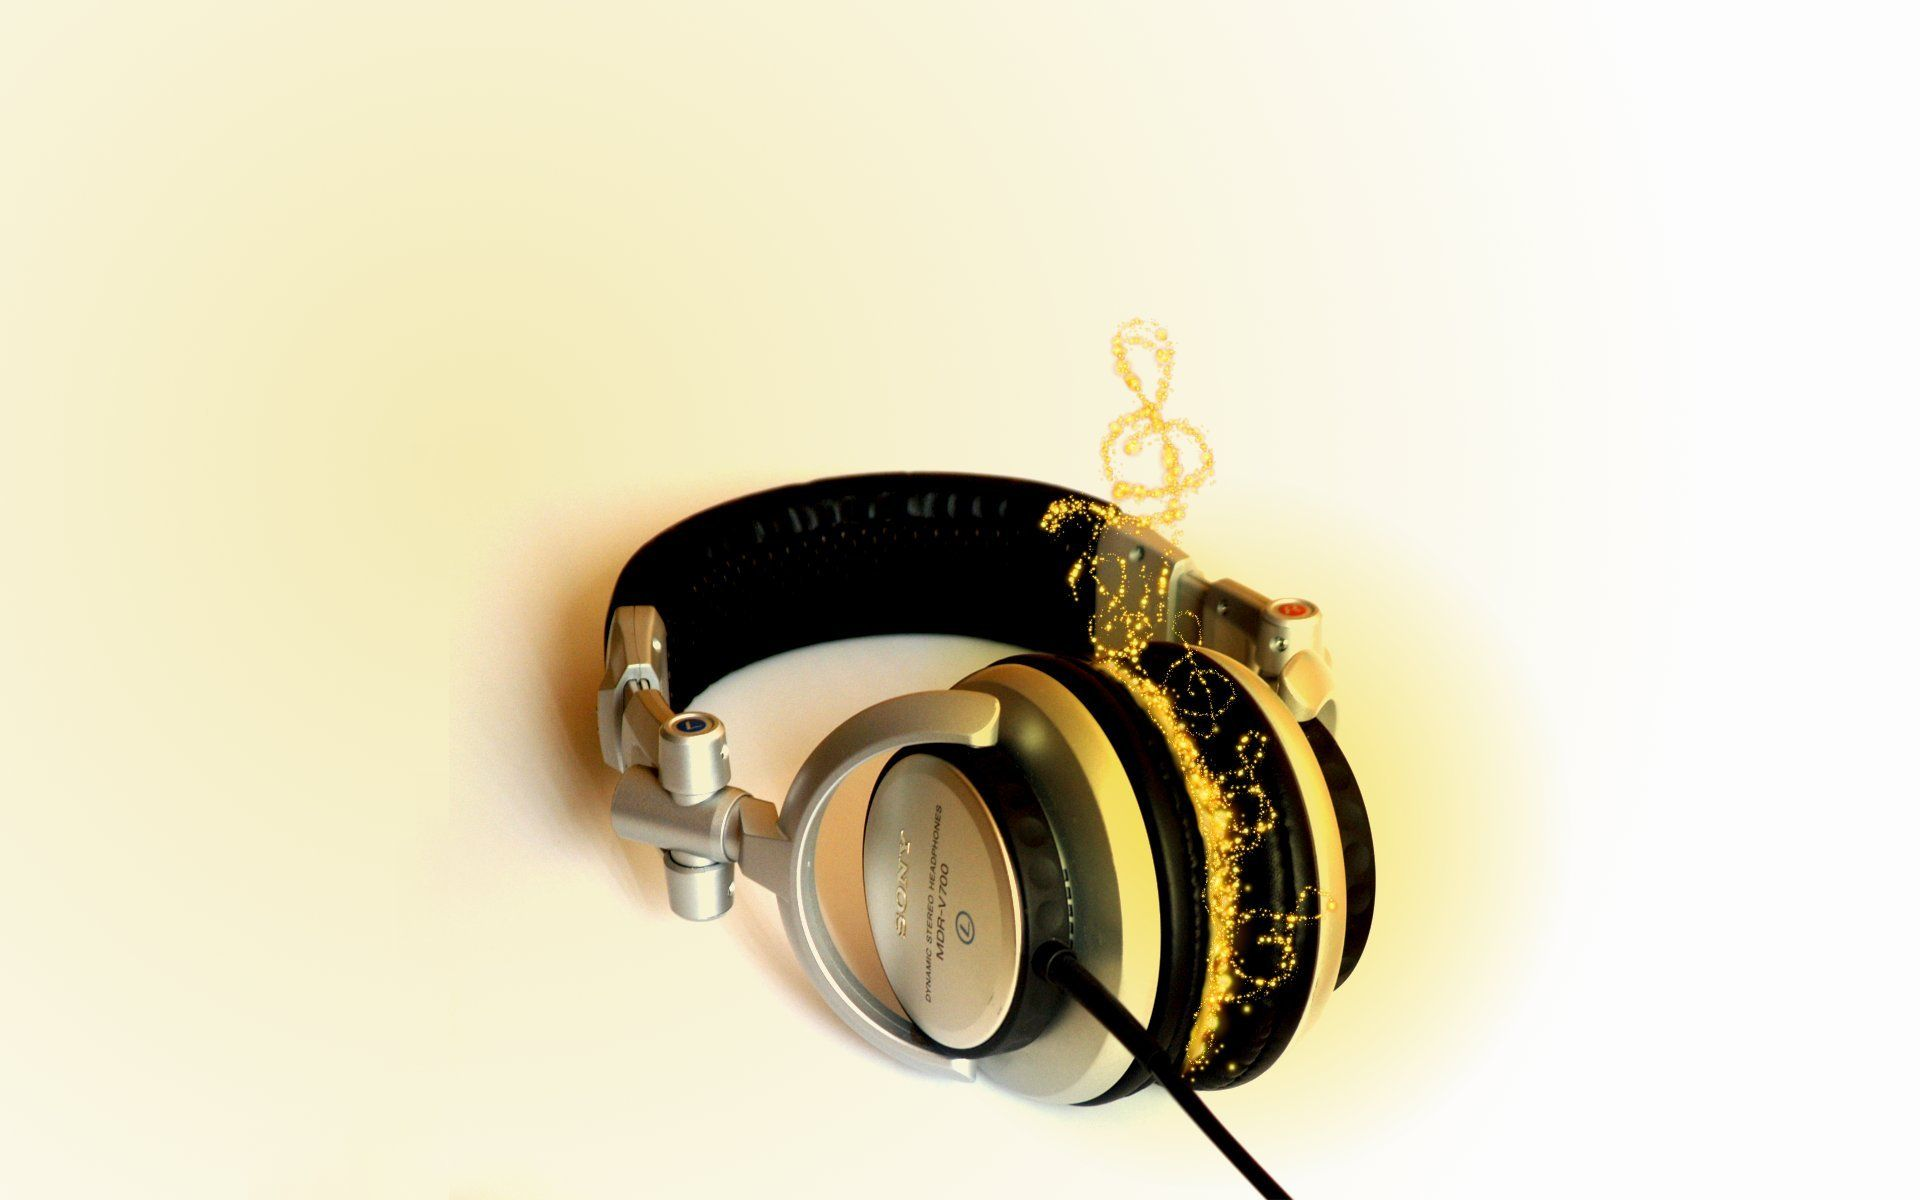 Must see Wallpaper Music Headphone - e64bd91145835e628df61736ad991ad1  You Should Have_31434.jpg